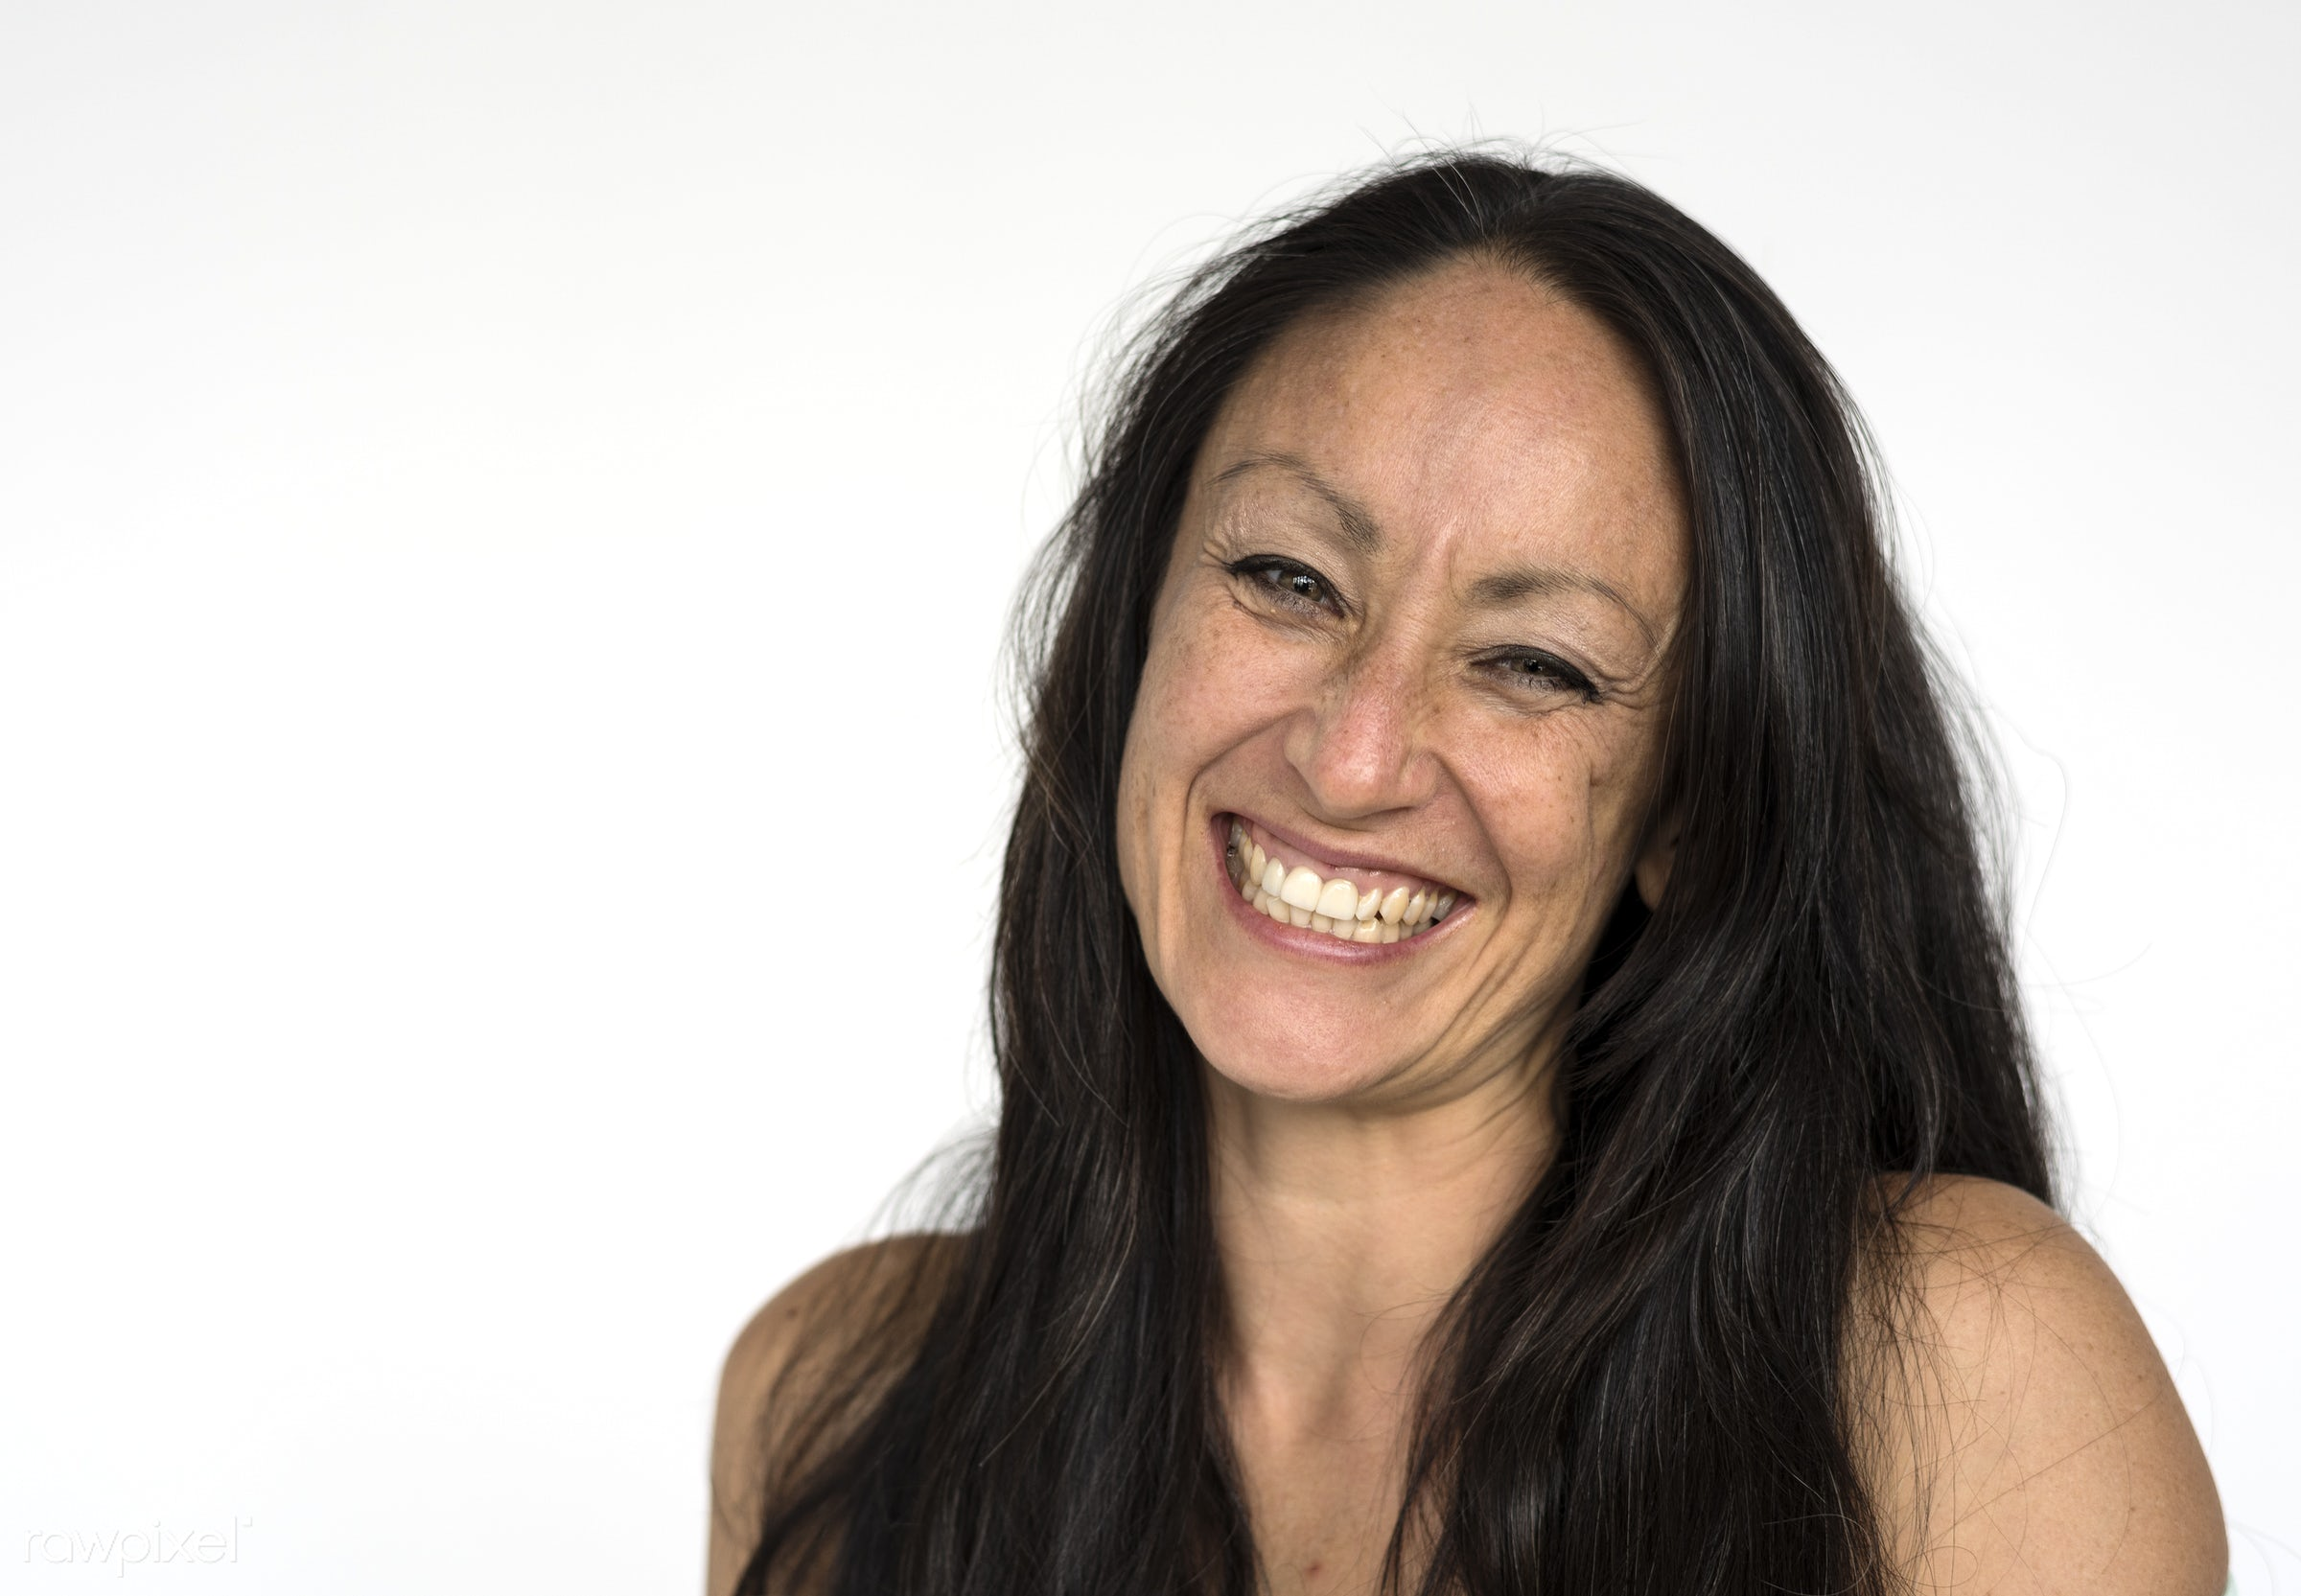 studio, expression, person, people, race, caucasian, woman, lifestyle, westerner, smile, positive, cheerful, isolated, white...